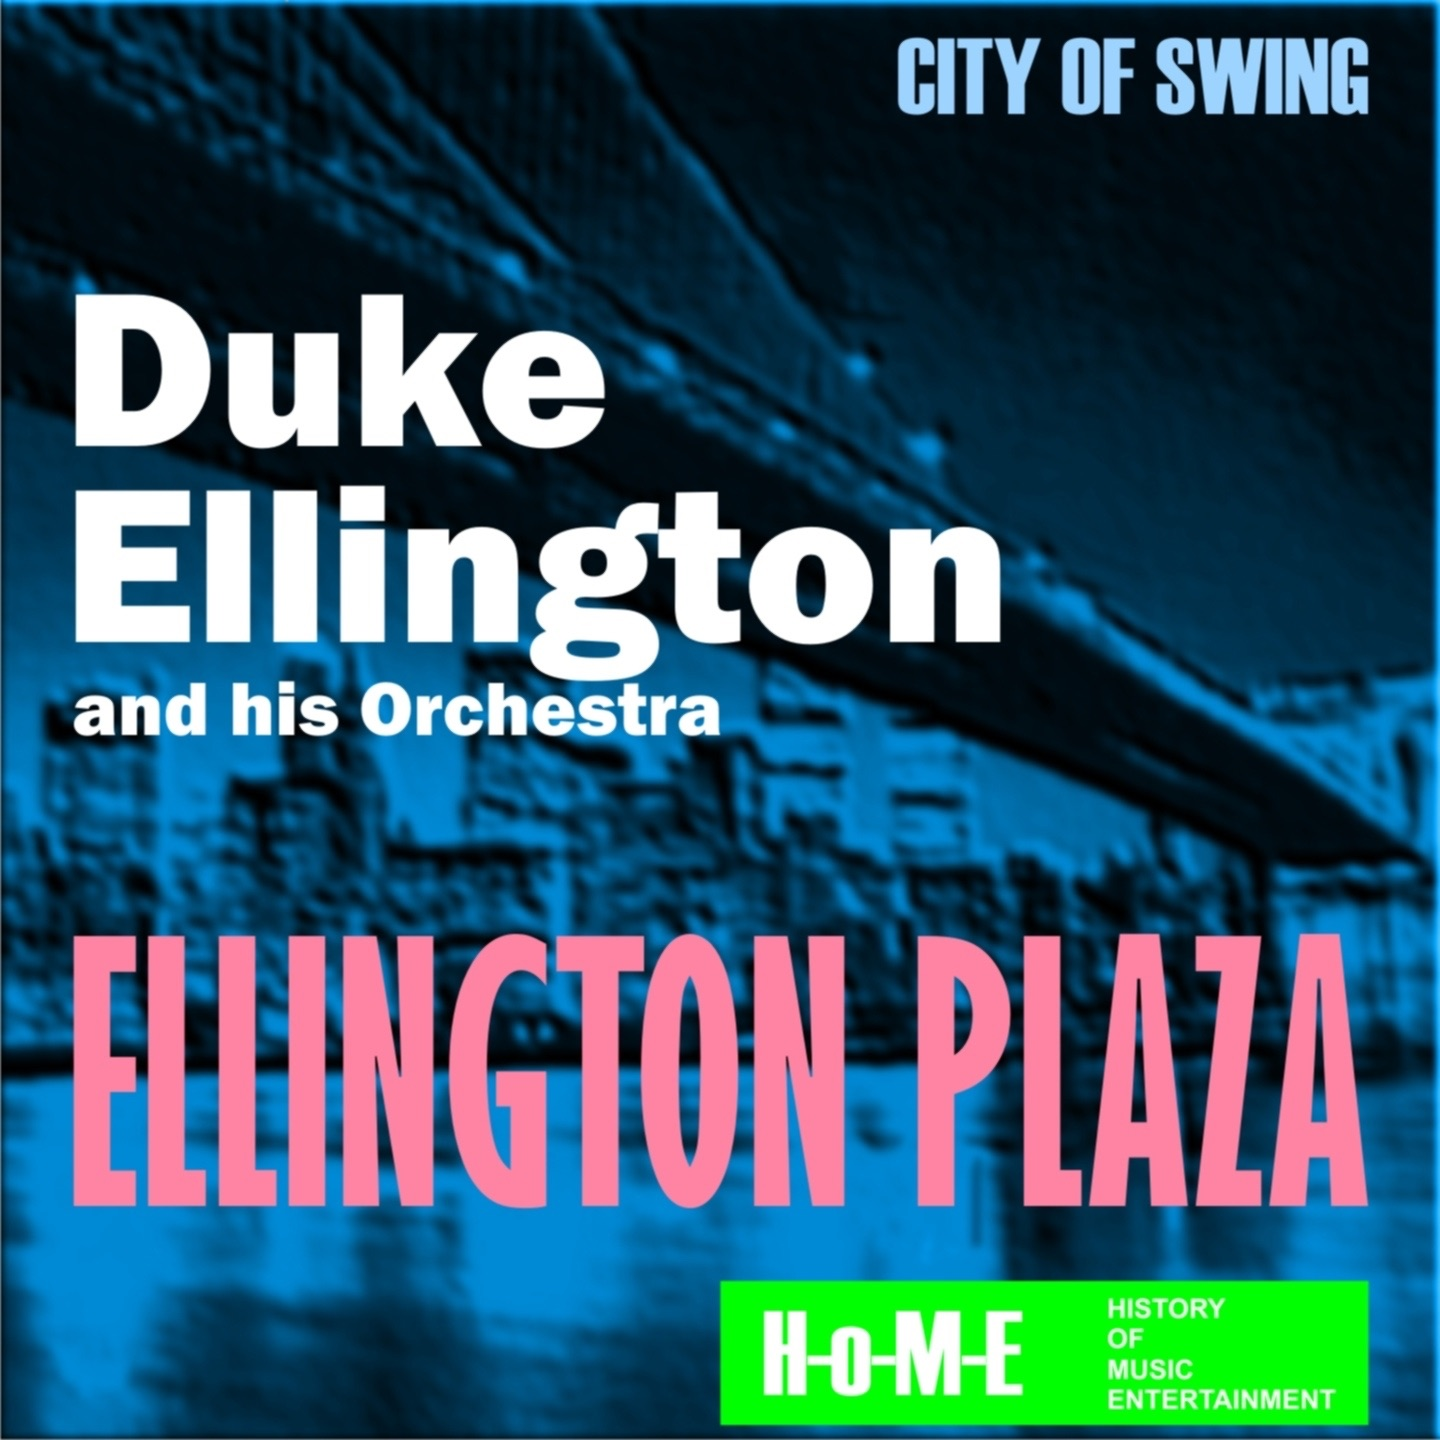 Ellington Plaza